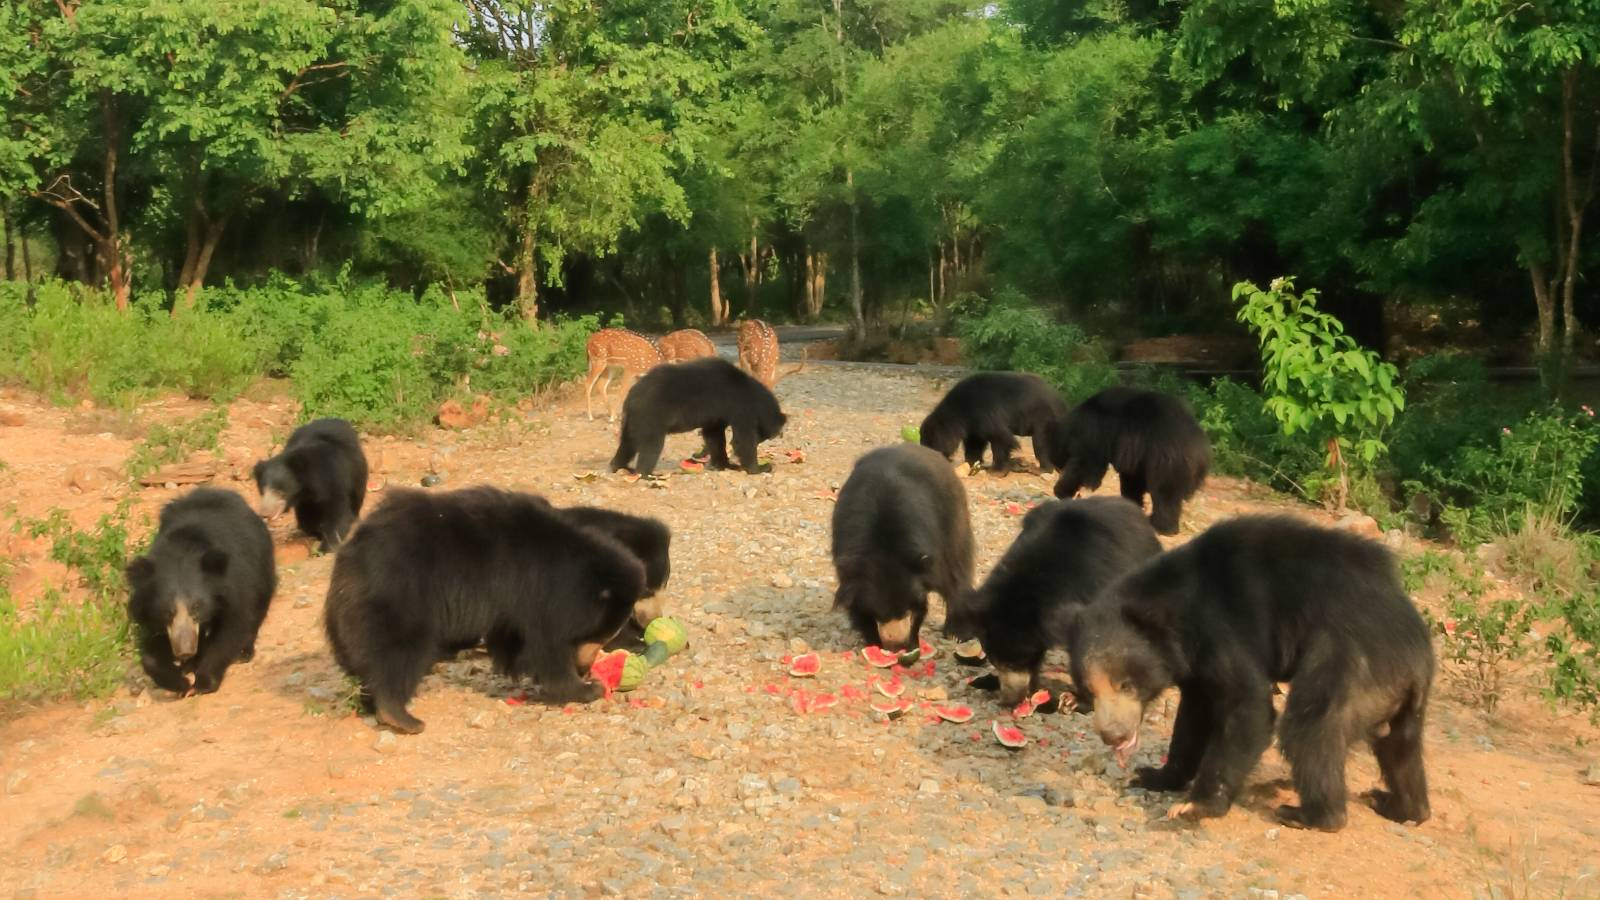 Sloth bears rescued from the dancing bear practice - evening feeding time